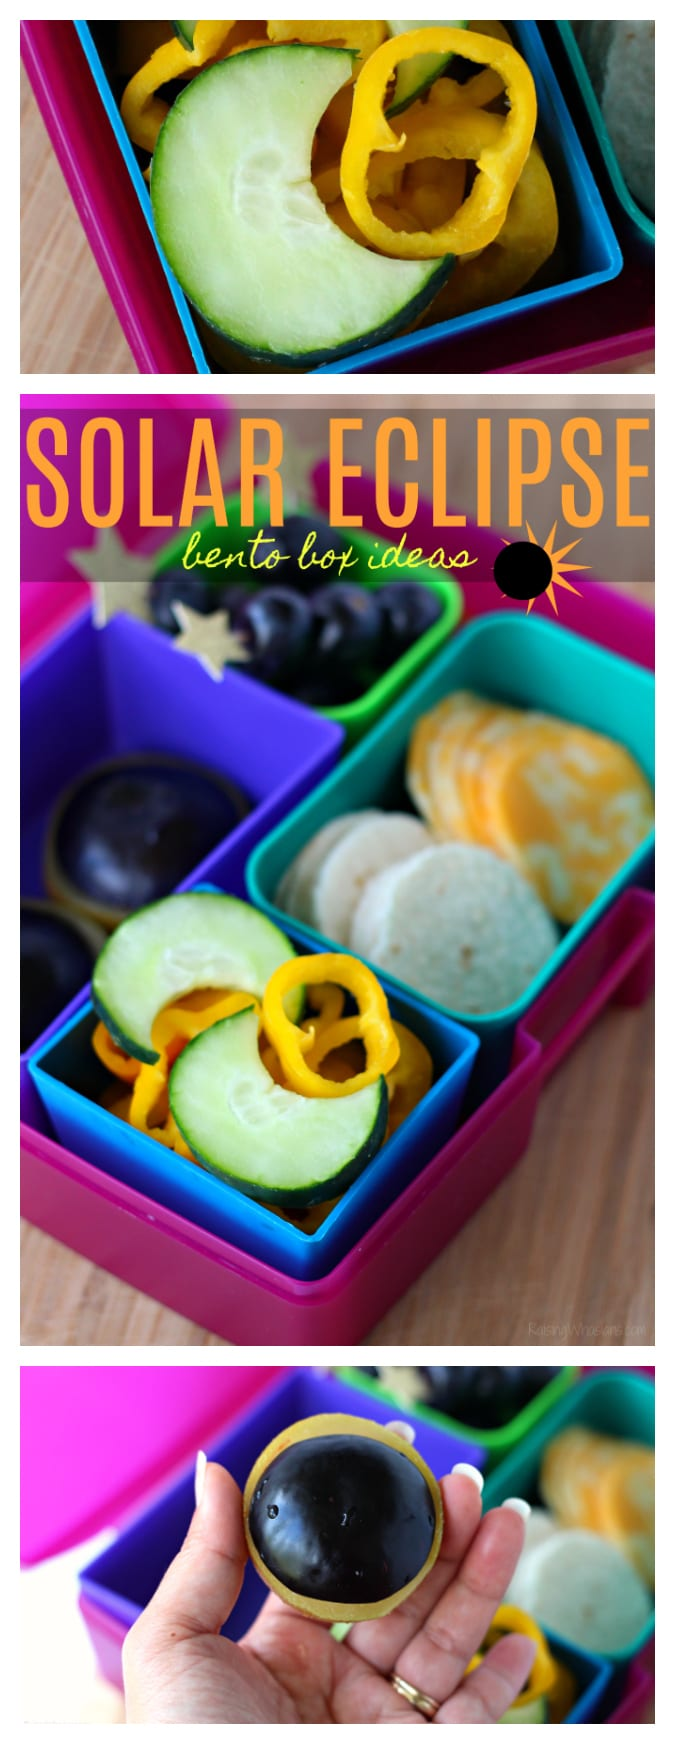 Solar eclipse bento box ideas pinterest